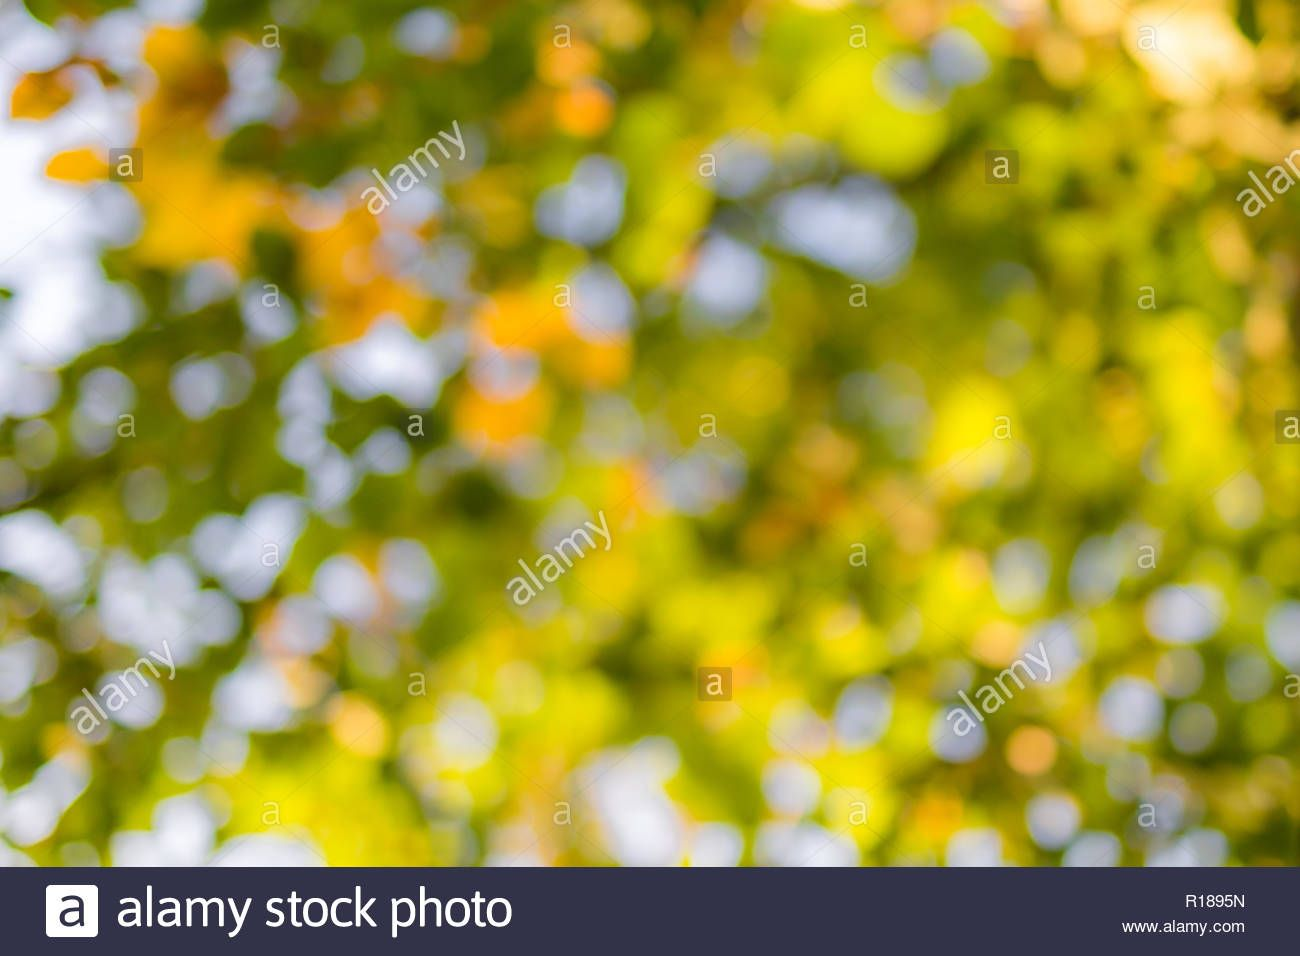 Download This Stock Image Natural Green Blur Background In Sunlight Abstract Round Bokeh From Green L Blurred Background Picsart Background Photo Backgrounds